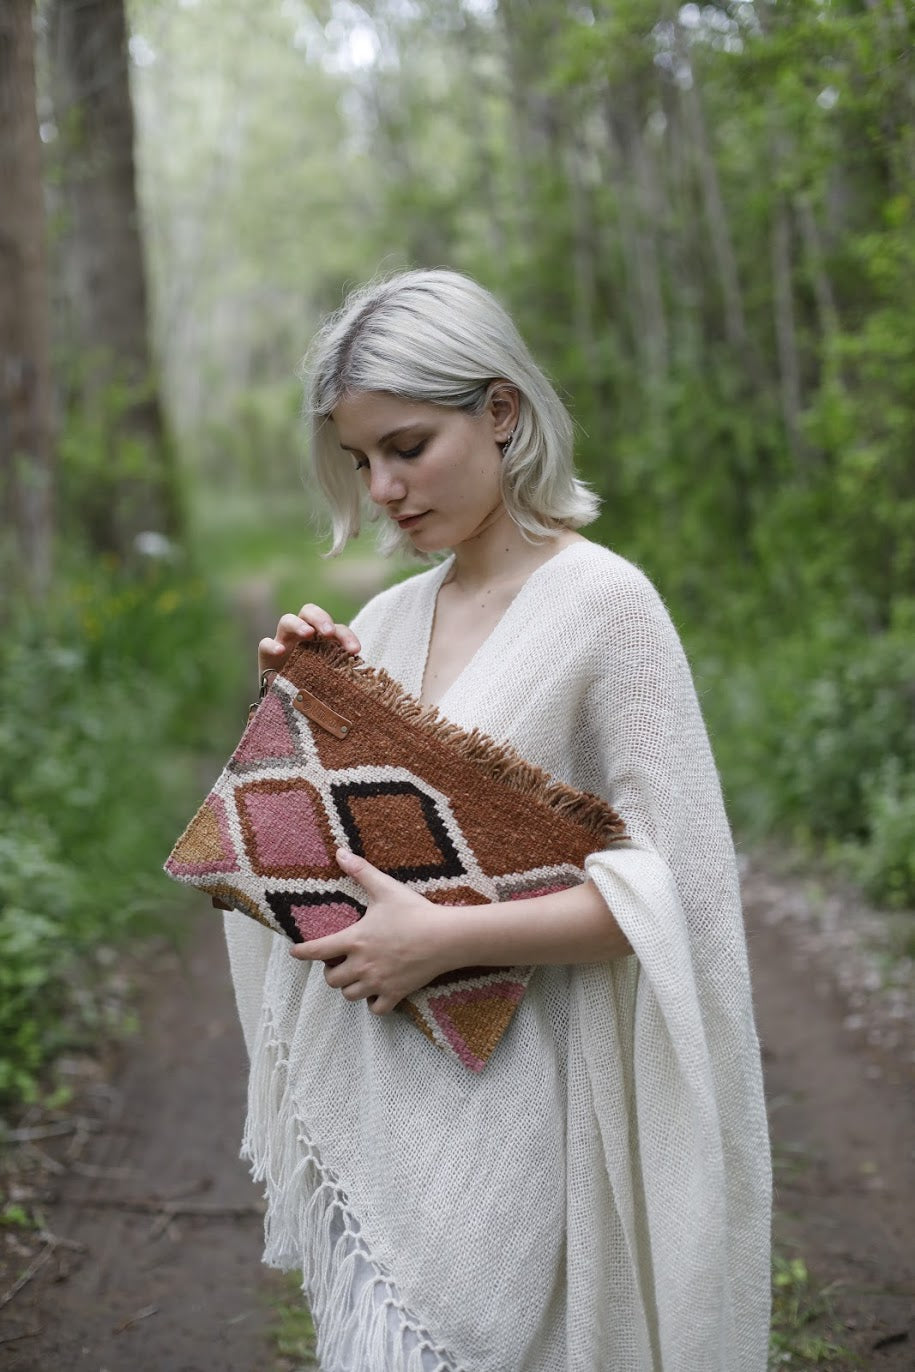 Woman holding Cream, Natural Brown, Pink, and Black Geometric Designed Clutch Bag.